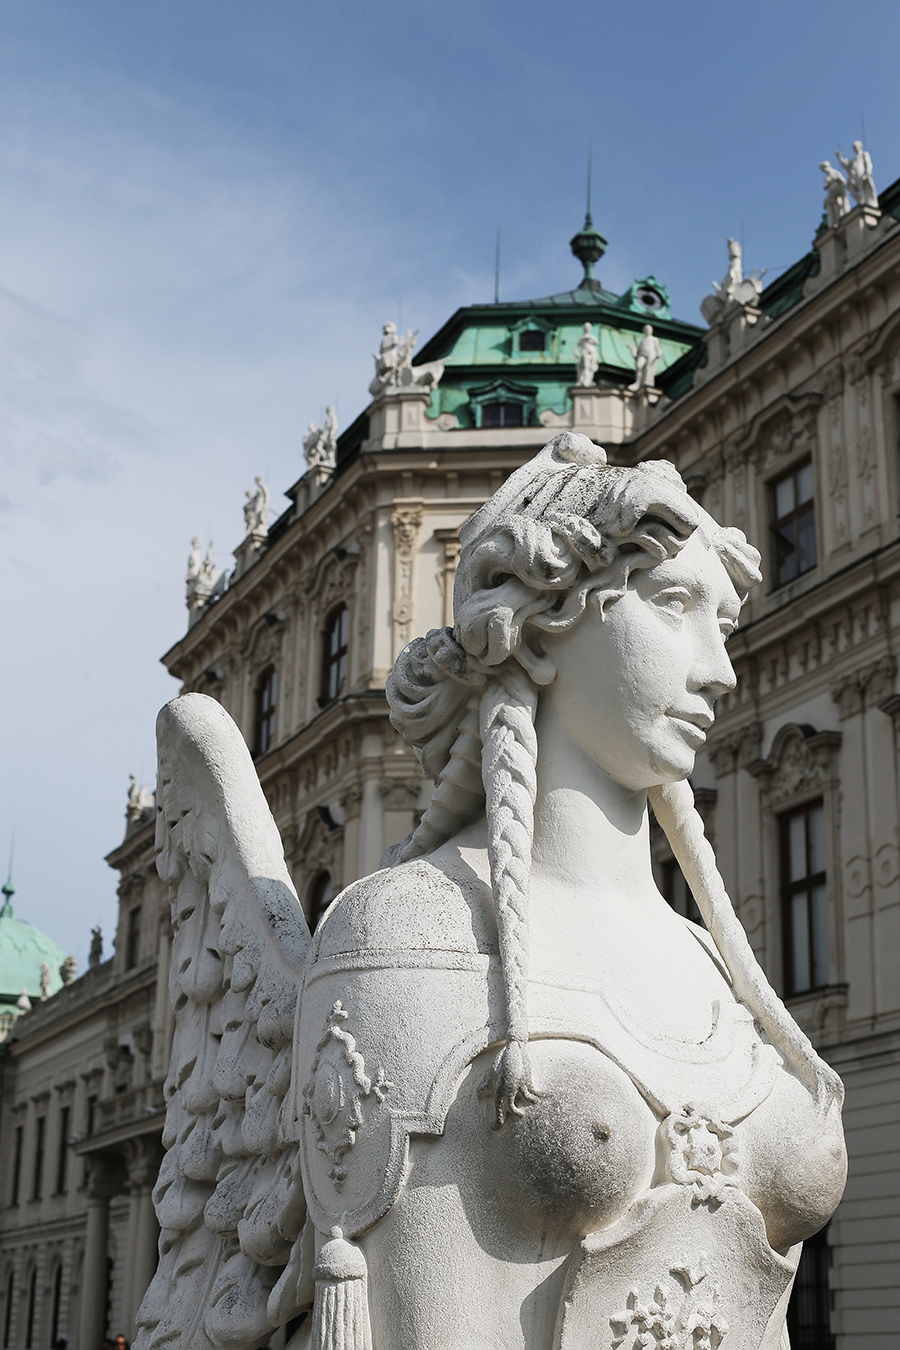 20 Days, 20 Cities, 6 Countries - Part 1: Vienna, Austria